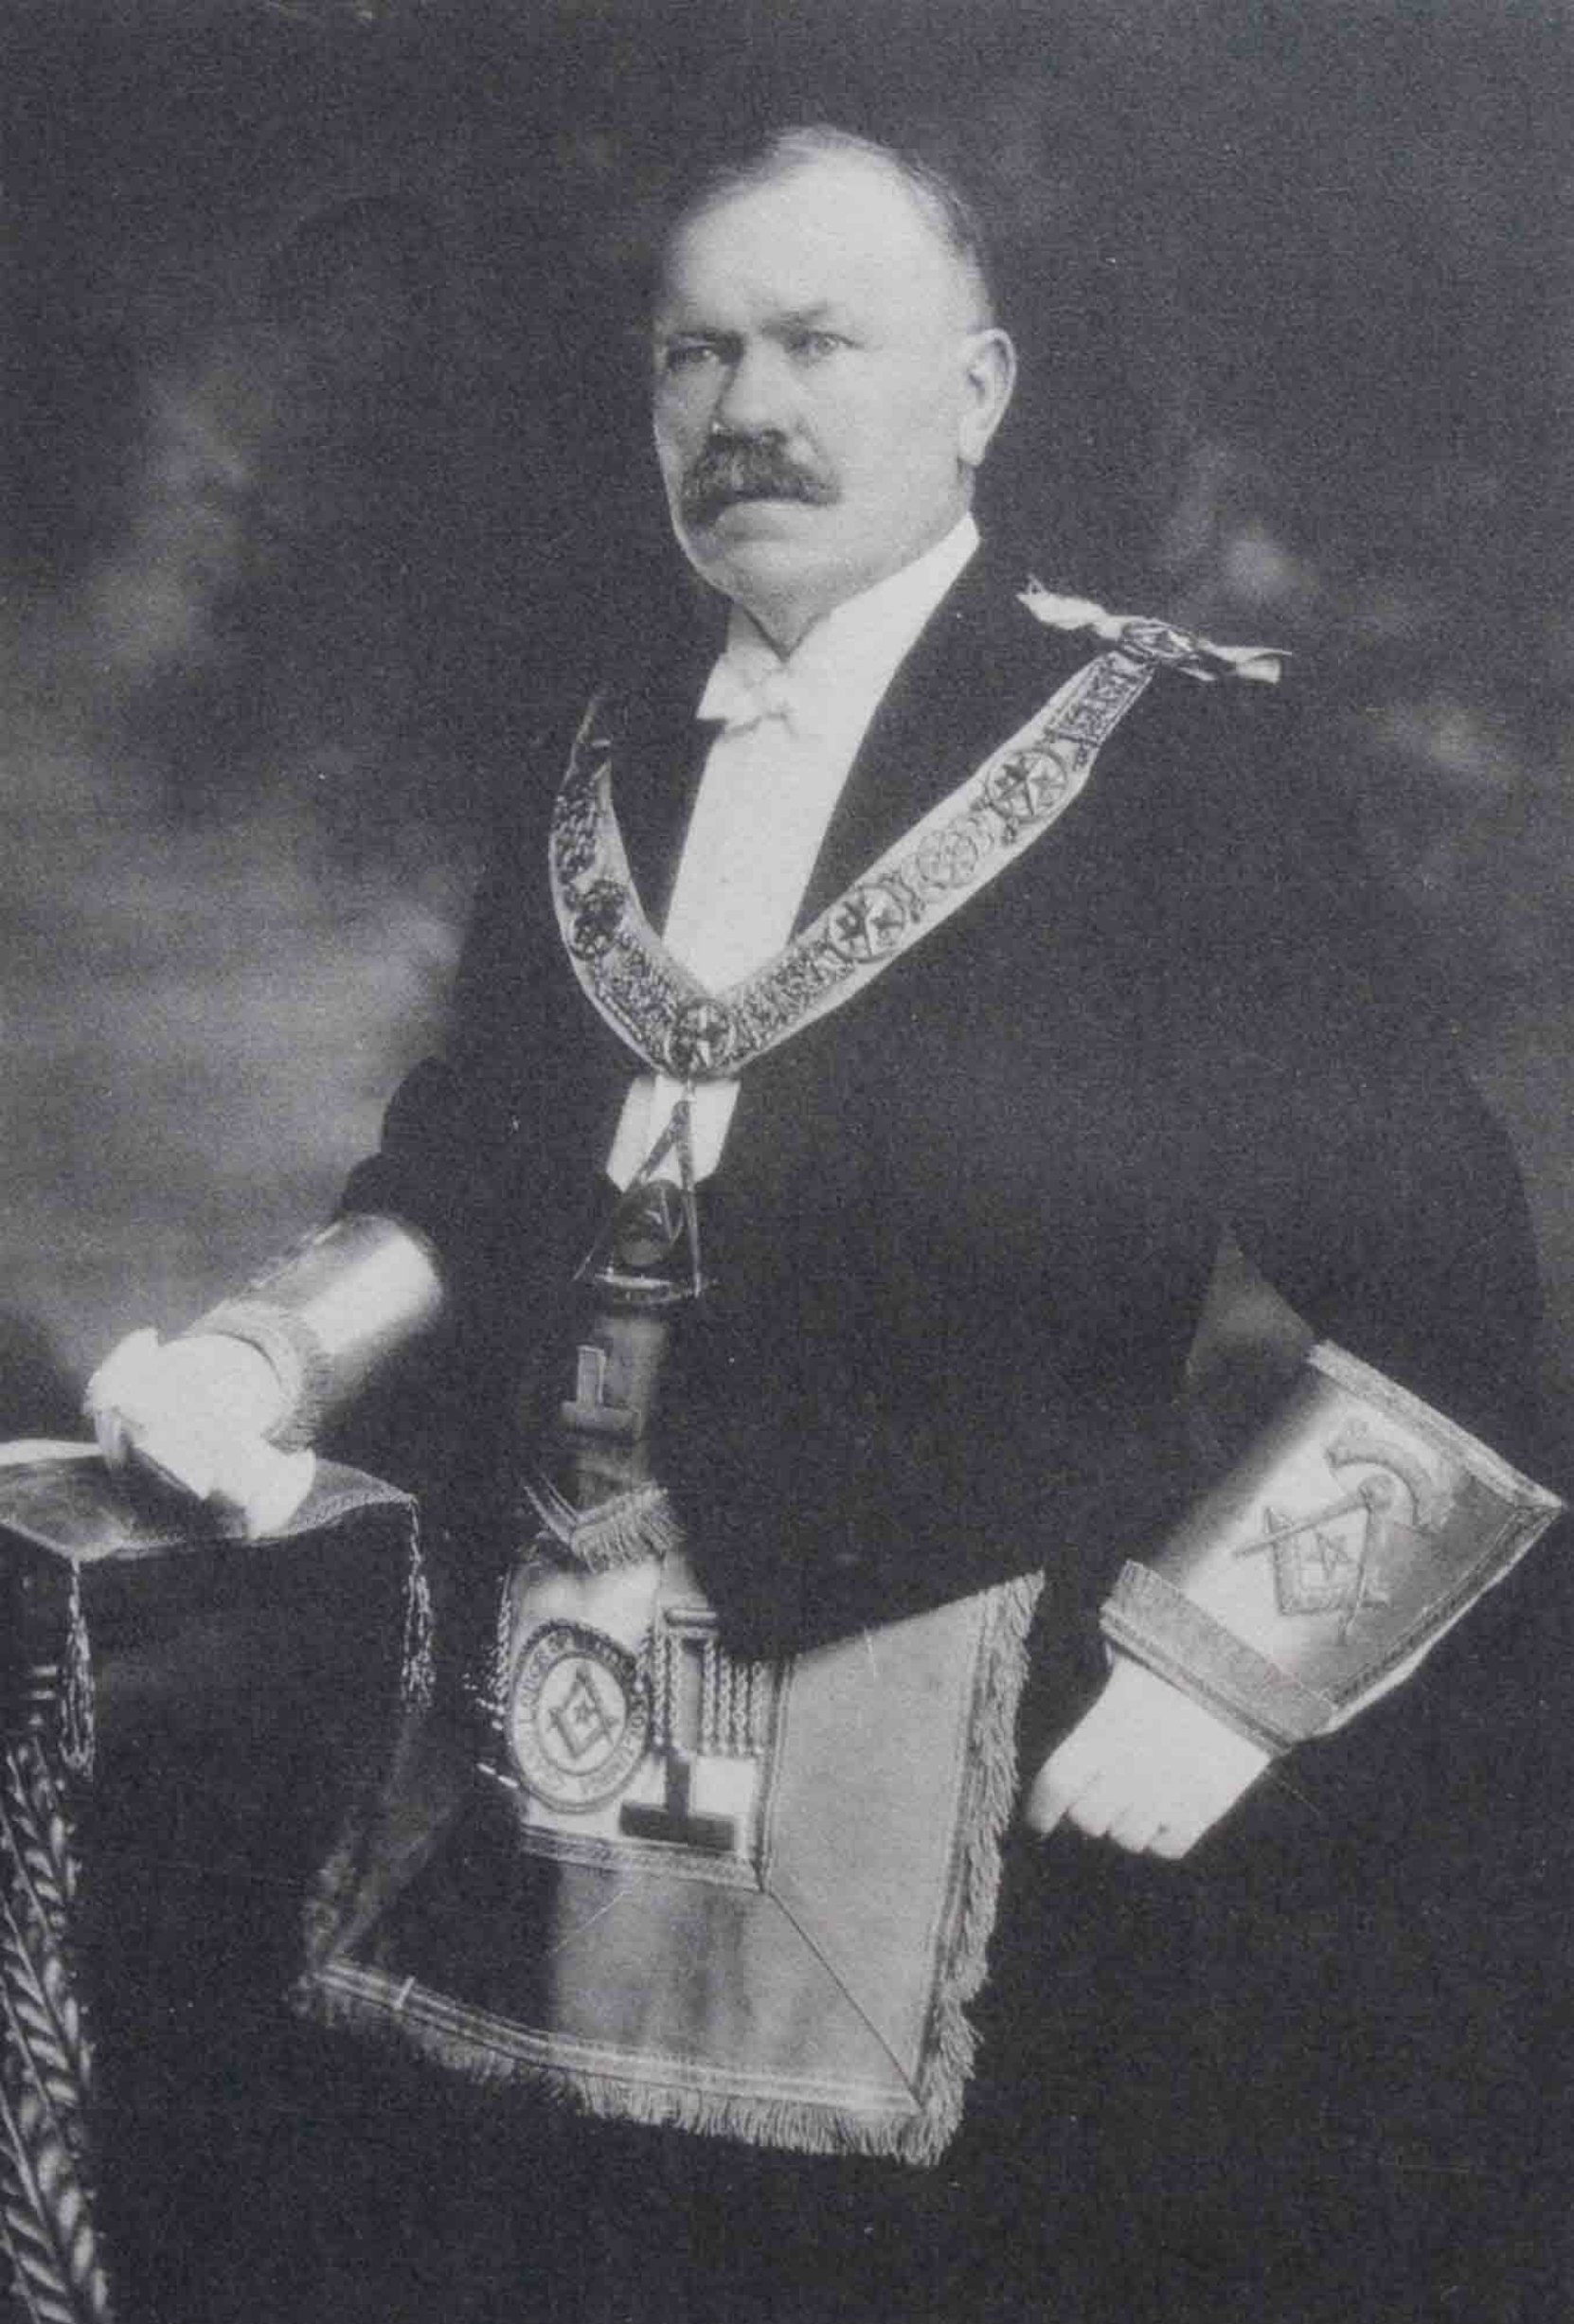 Stephen Jones as Grand Master of B.C., 1924-25 (Photo - Grand Lodge of B.C. & Yukon)